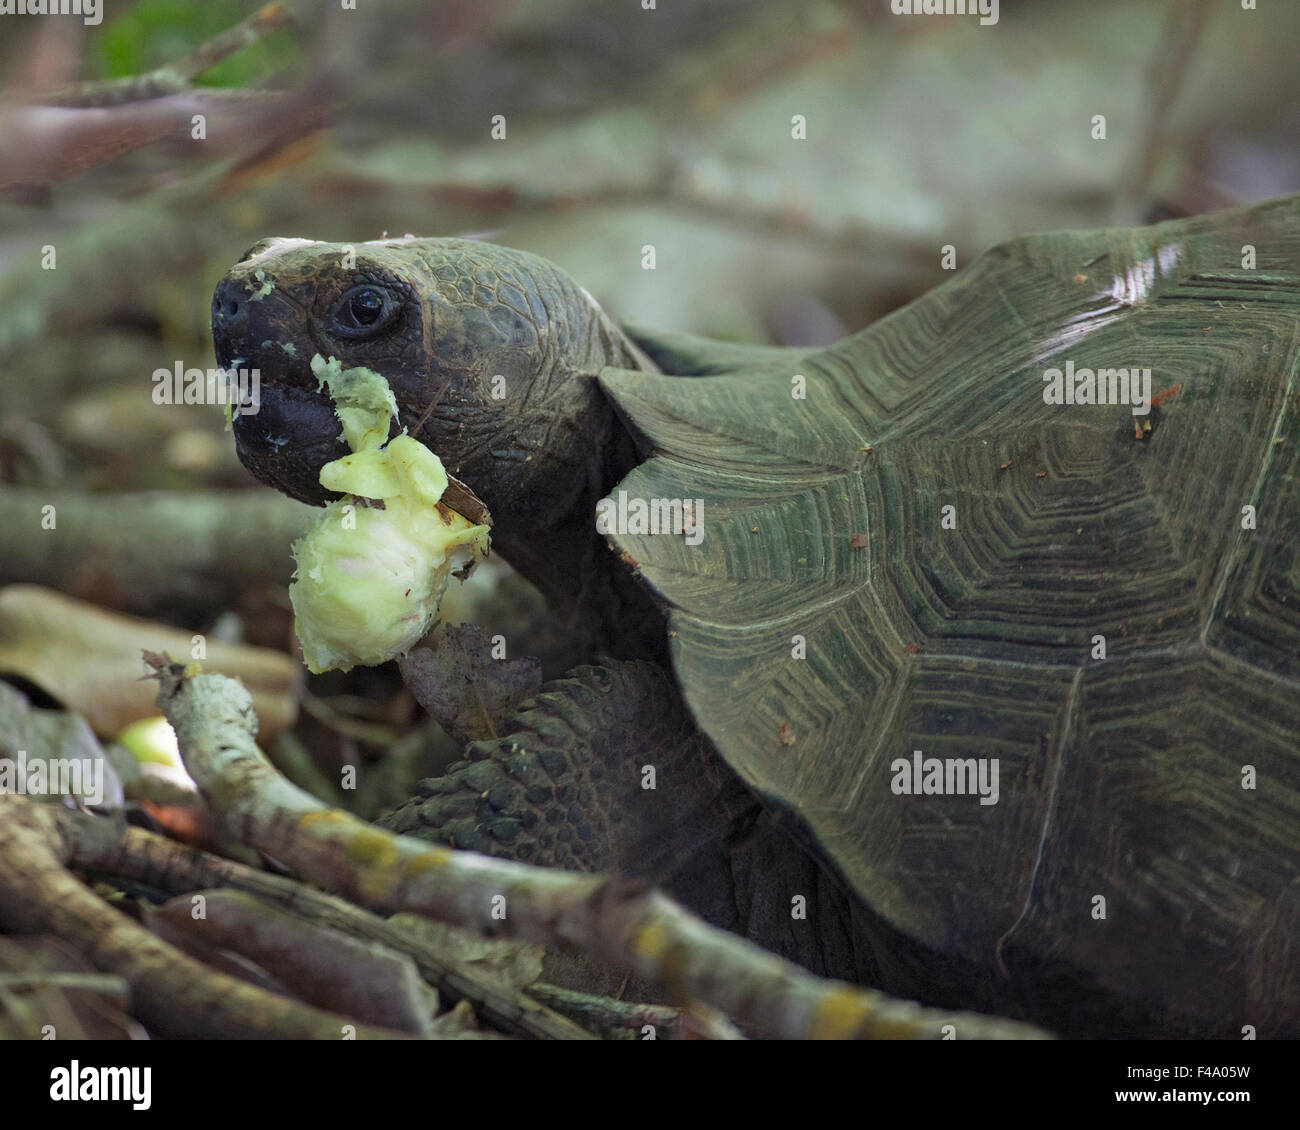 Galapagos Giant Tortoise (Chelonoidis nigra) eating poison apple (Hippomane mancinella). The fruit and tree are - Stock Image